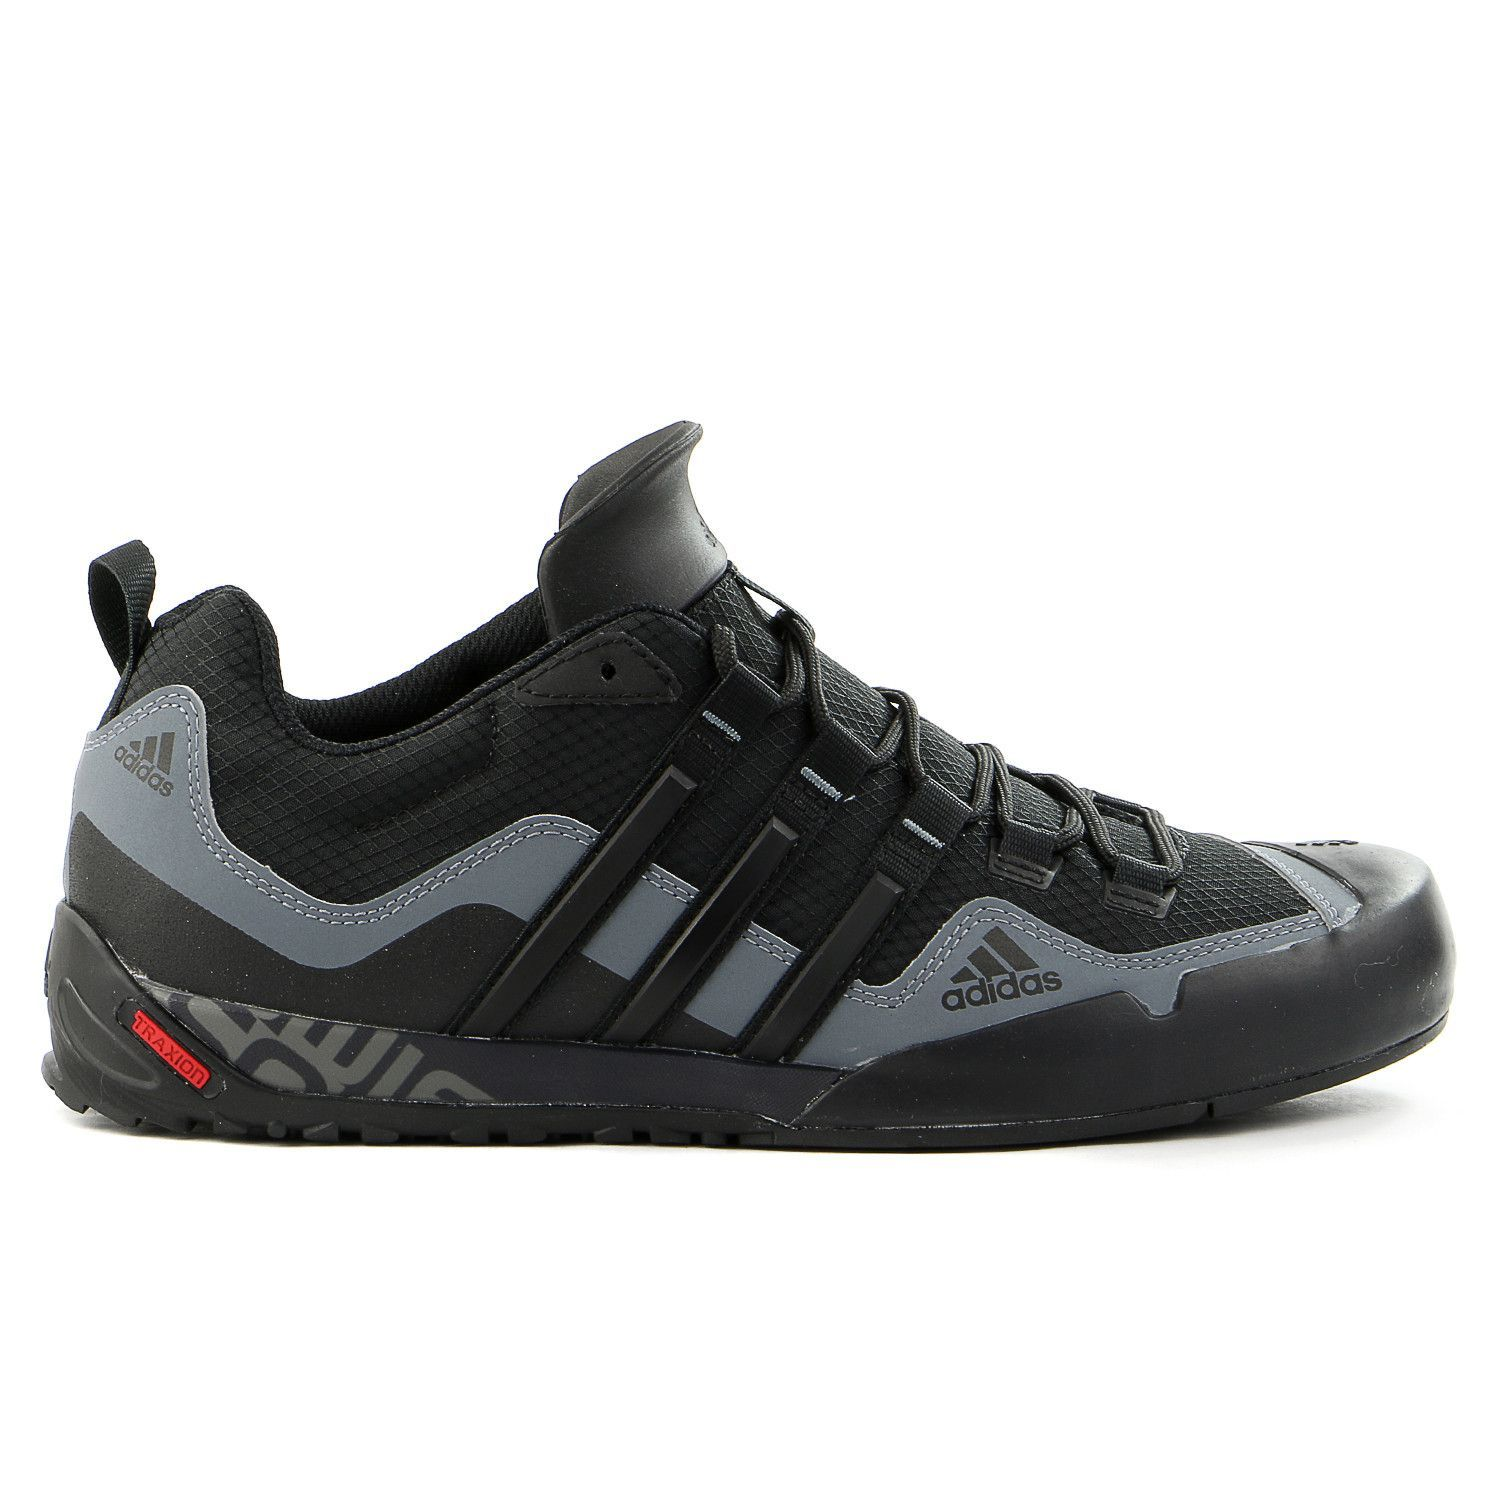 Adidas Outdoor Terrex Swift Solo Hiking Sneaker Trail Shoe Mens Sneakers Men Fashion Addidas Shoes Trail Shoes